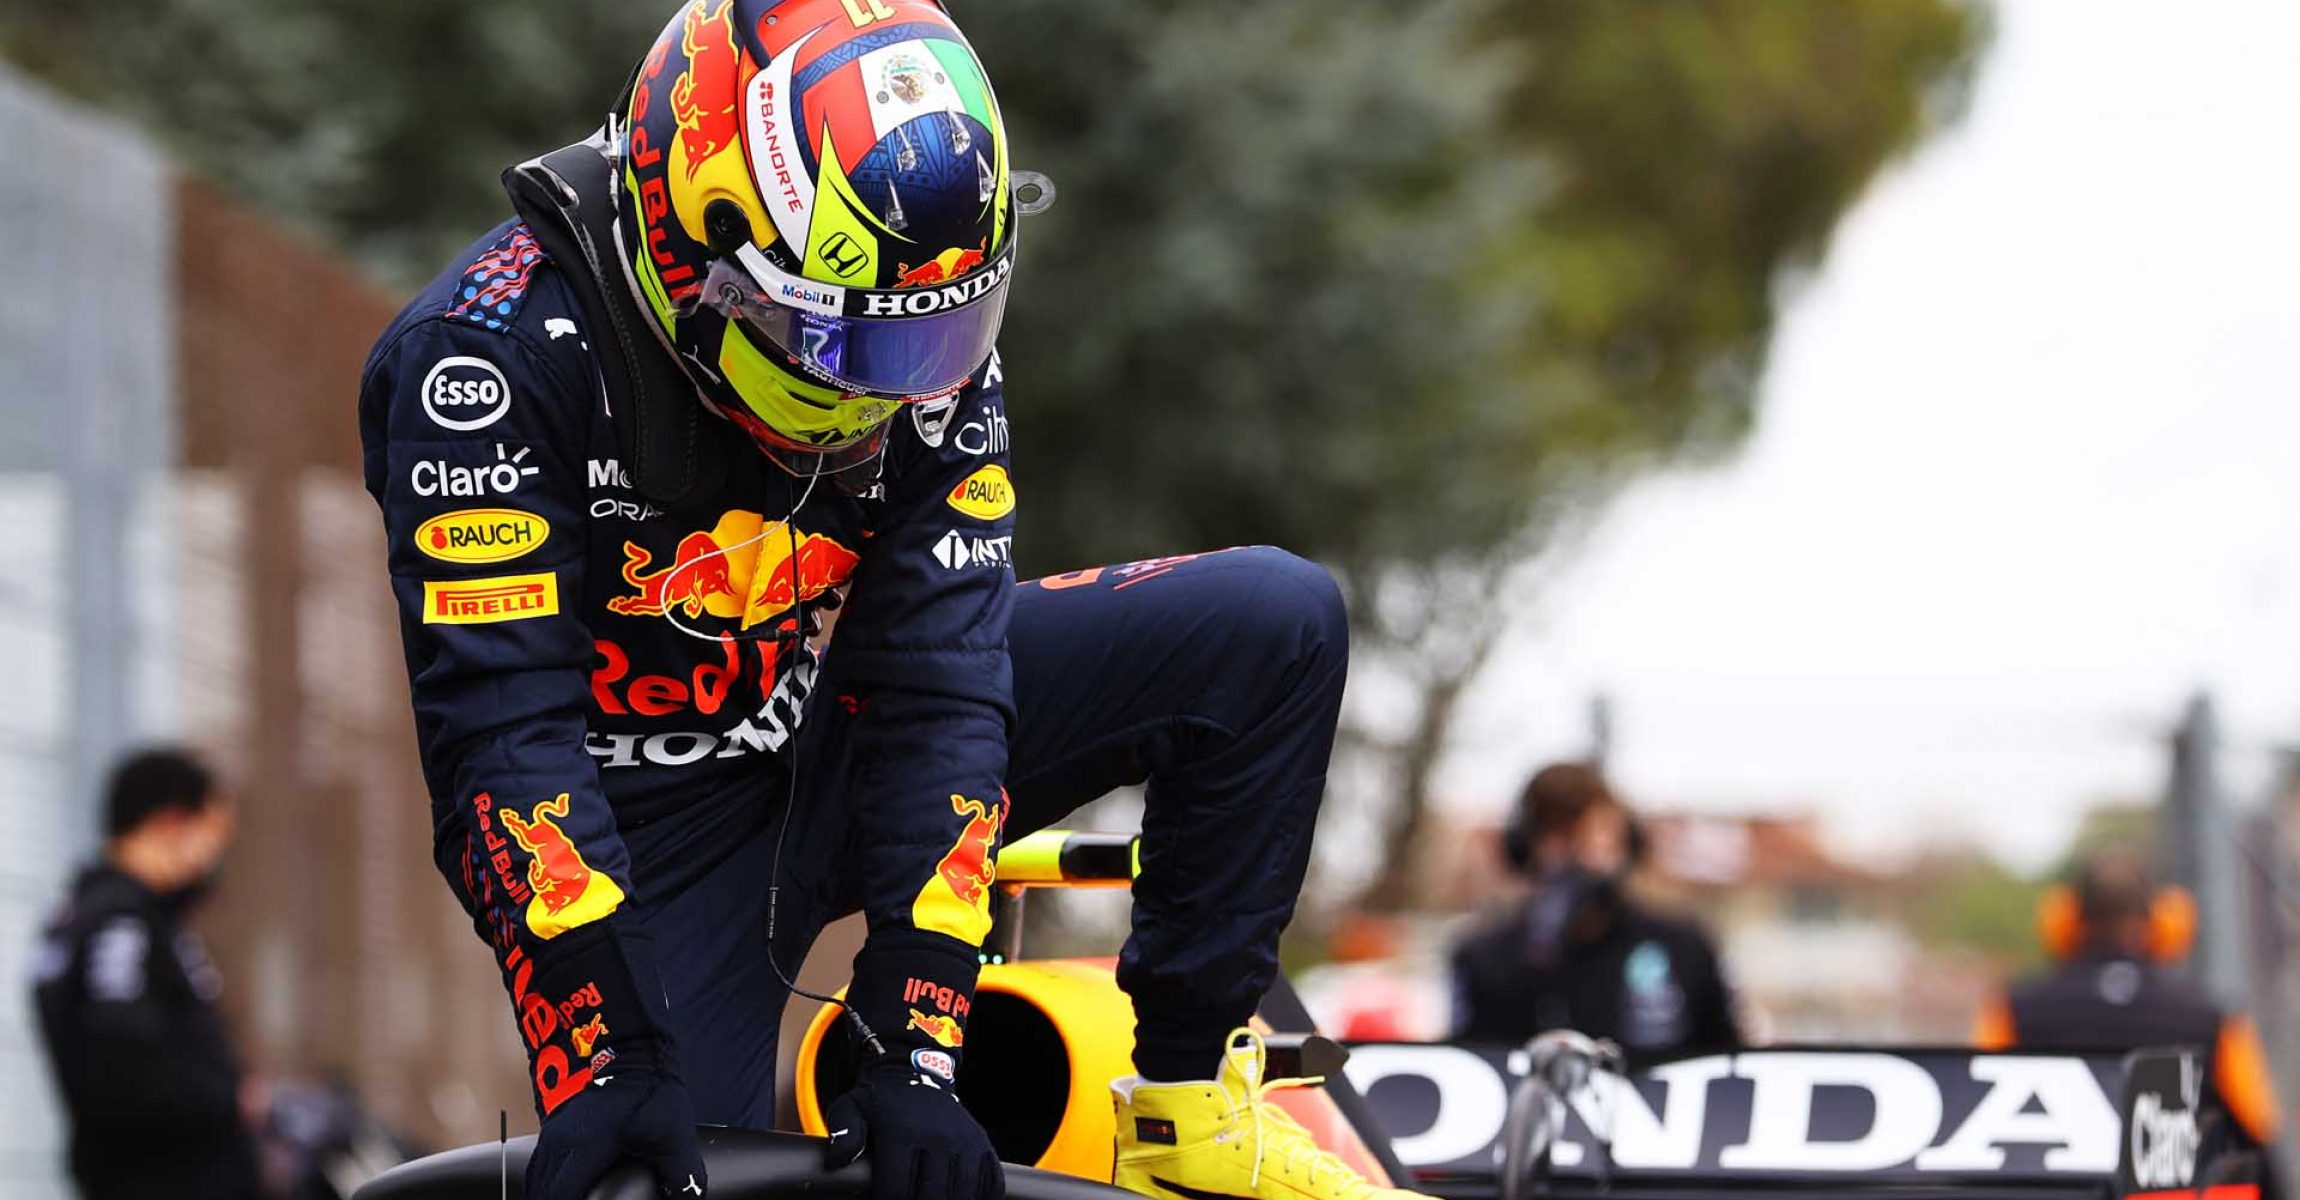 IMOLA, ITALY - APRIL 17: Second place qualifier Sergio Perez of Mexico and Red Bull Racing climbs from his car in parc ferme during qualifying ahead of the F1 Grand Prix of Emilia Romagna at Autodromo Enzo e Dino Ferrari on April 17, 2021 in Imola, Italy. (Photo by Bryn Lennon/Getty Images)